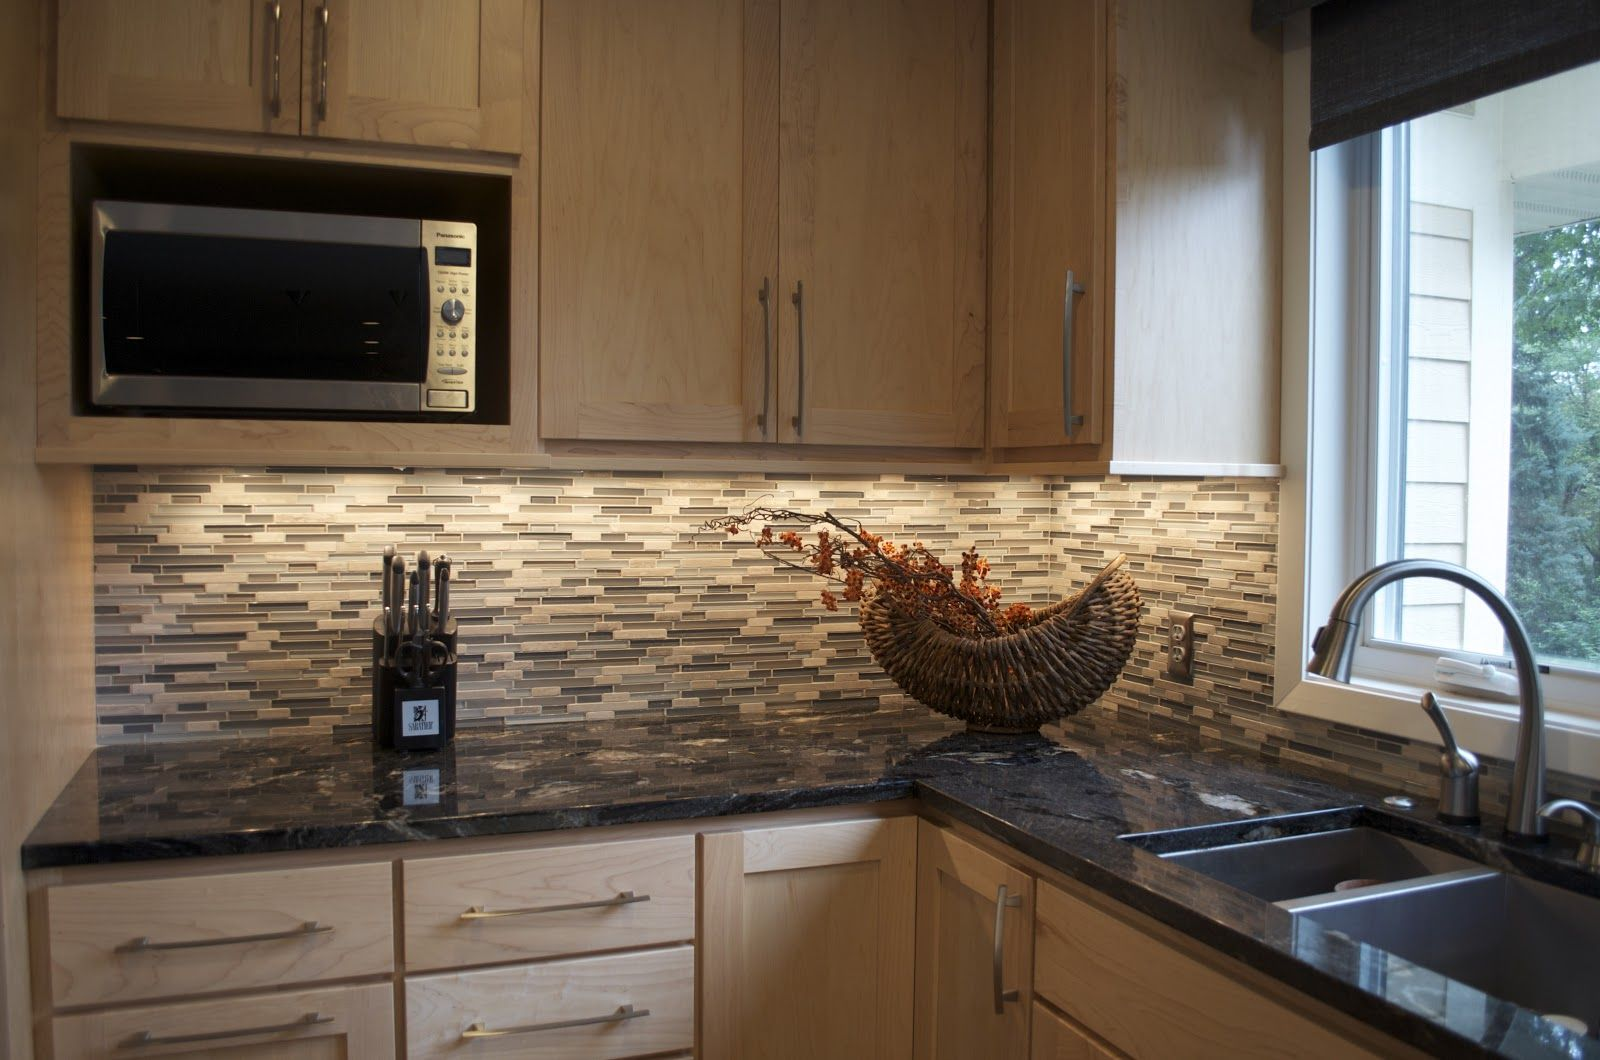 maple cabinet backsplash - Google Search | Modern kitchen ... on Backsplash Maple Cabinets With Black Countertops  id=34258